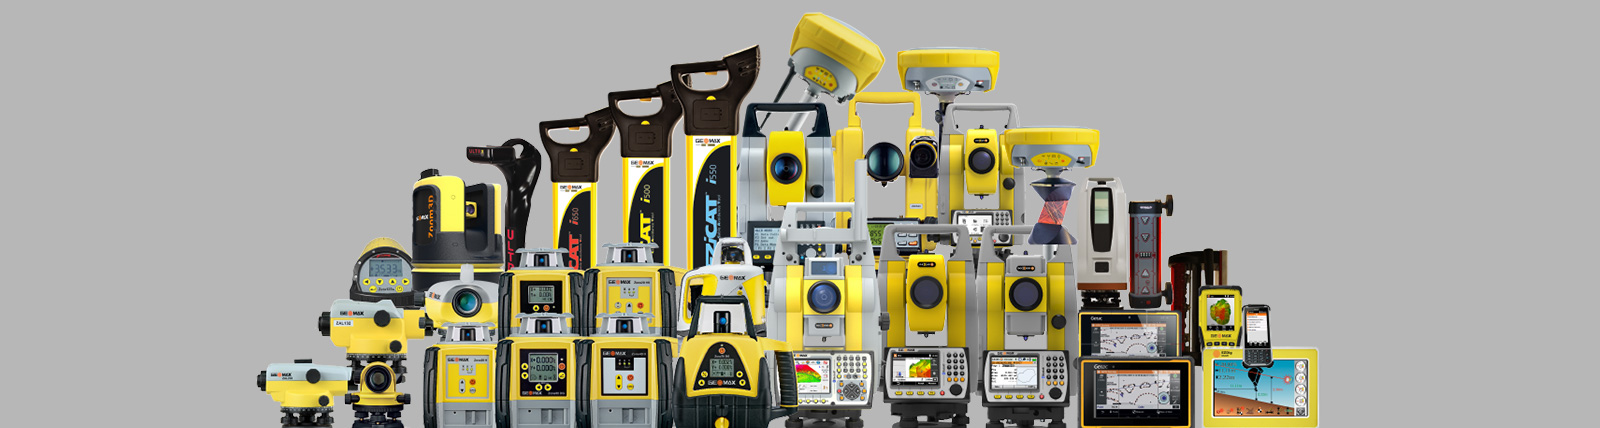 GeoMax Product Family